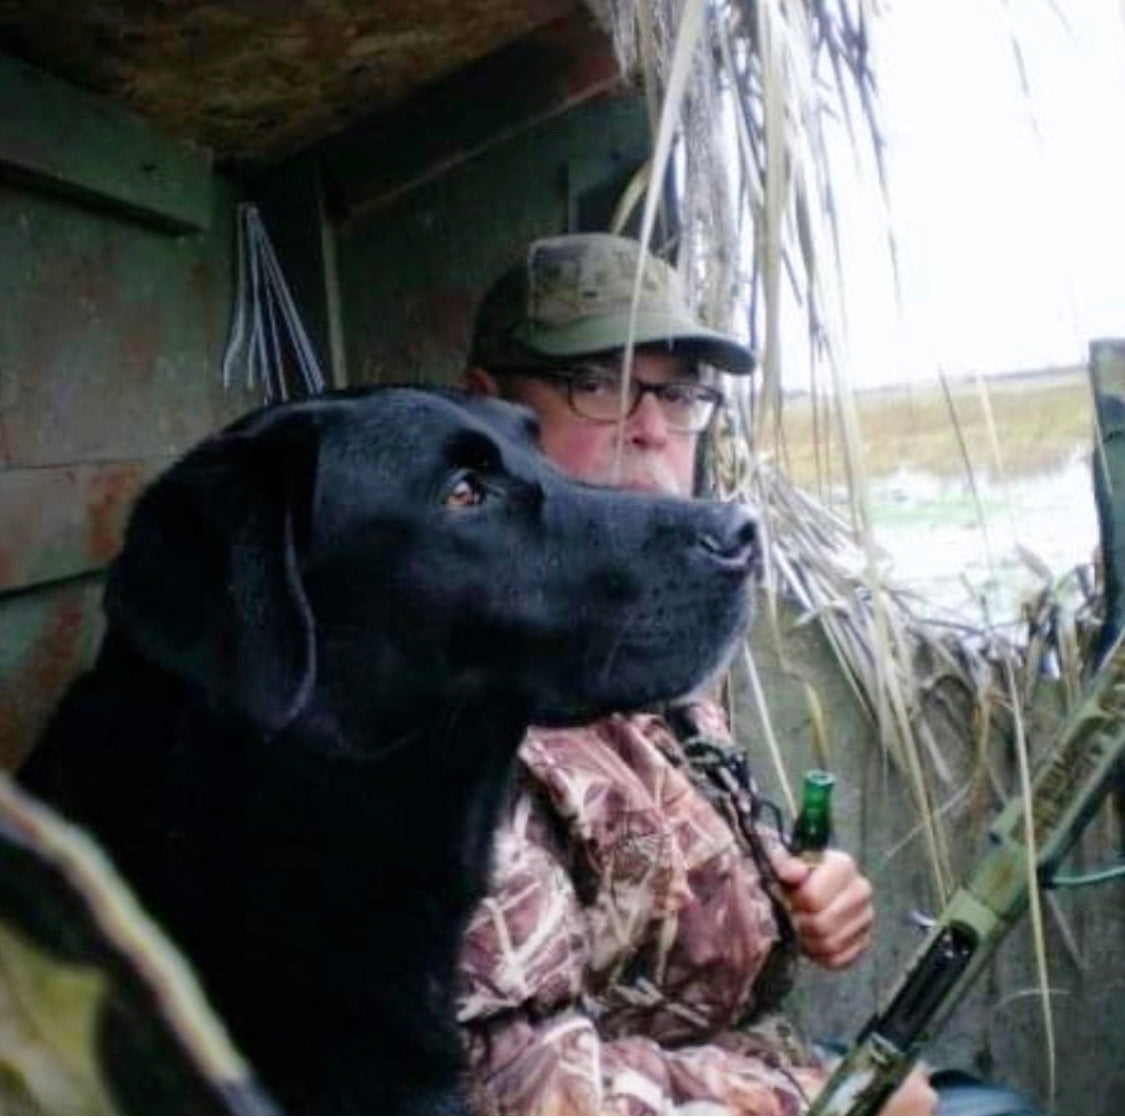 Marley and ME in the duck blind watching for ducks